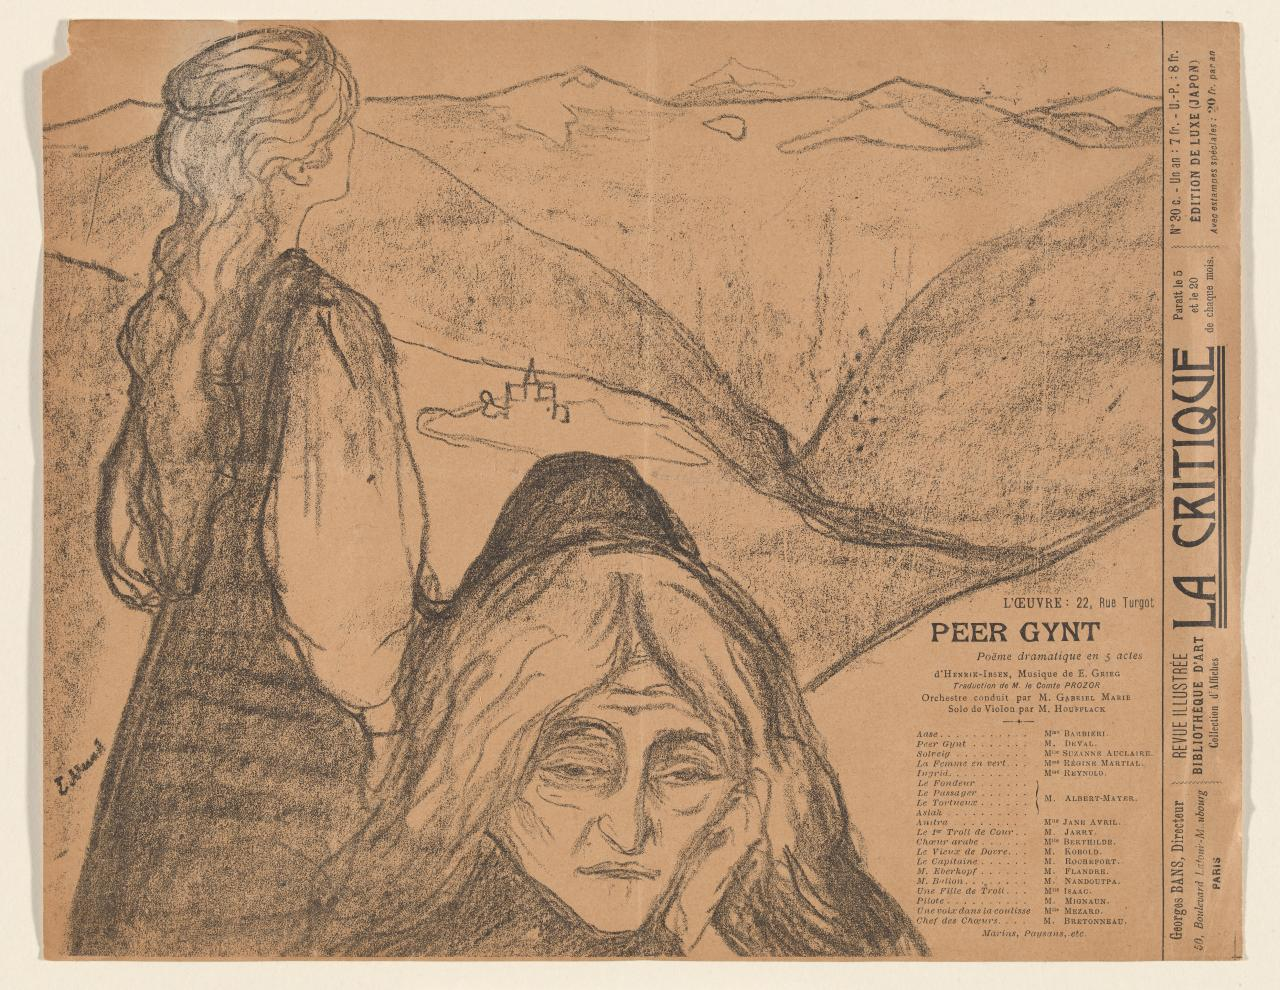 Playbill for Theatre de l'Oeuvre: Peer Gynt 1896